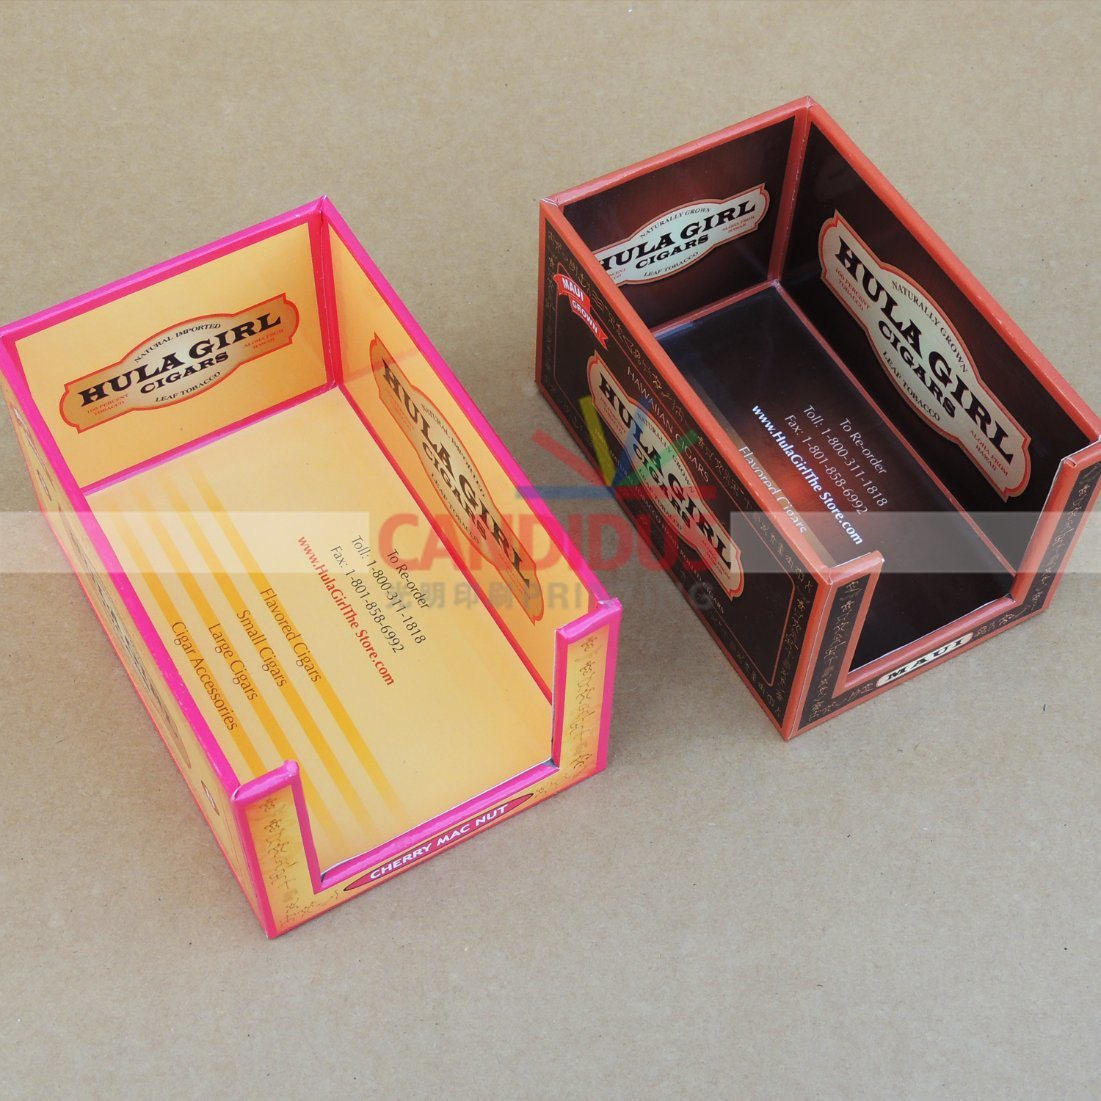 Customized Packaging Boxes Gift Boxes Paper Boxes Carton Boxes Packing Boxes